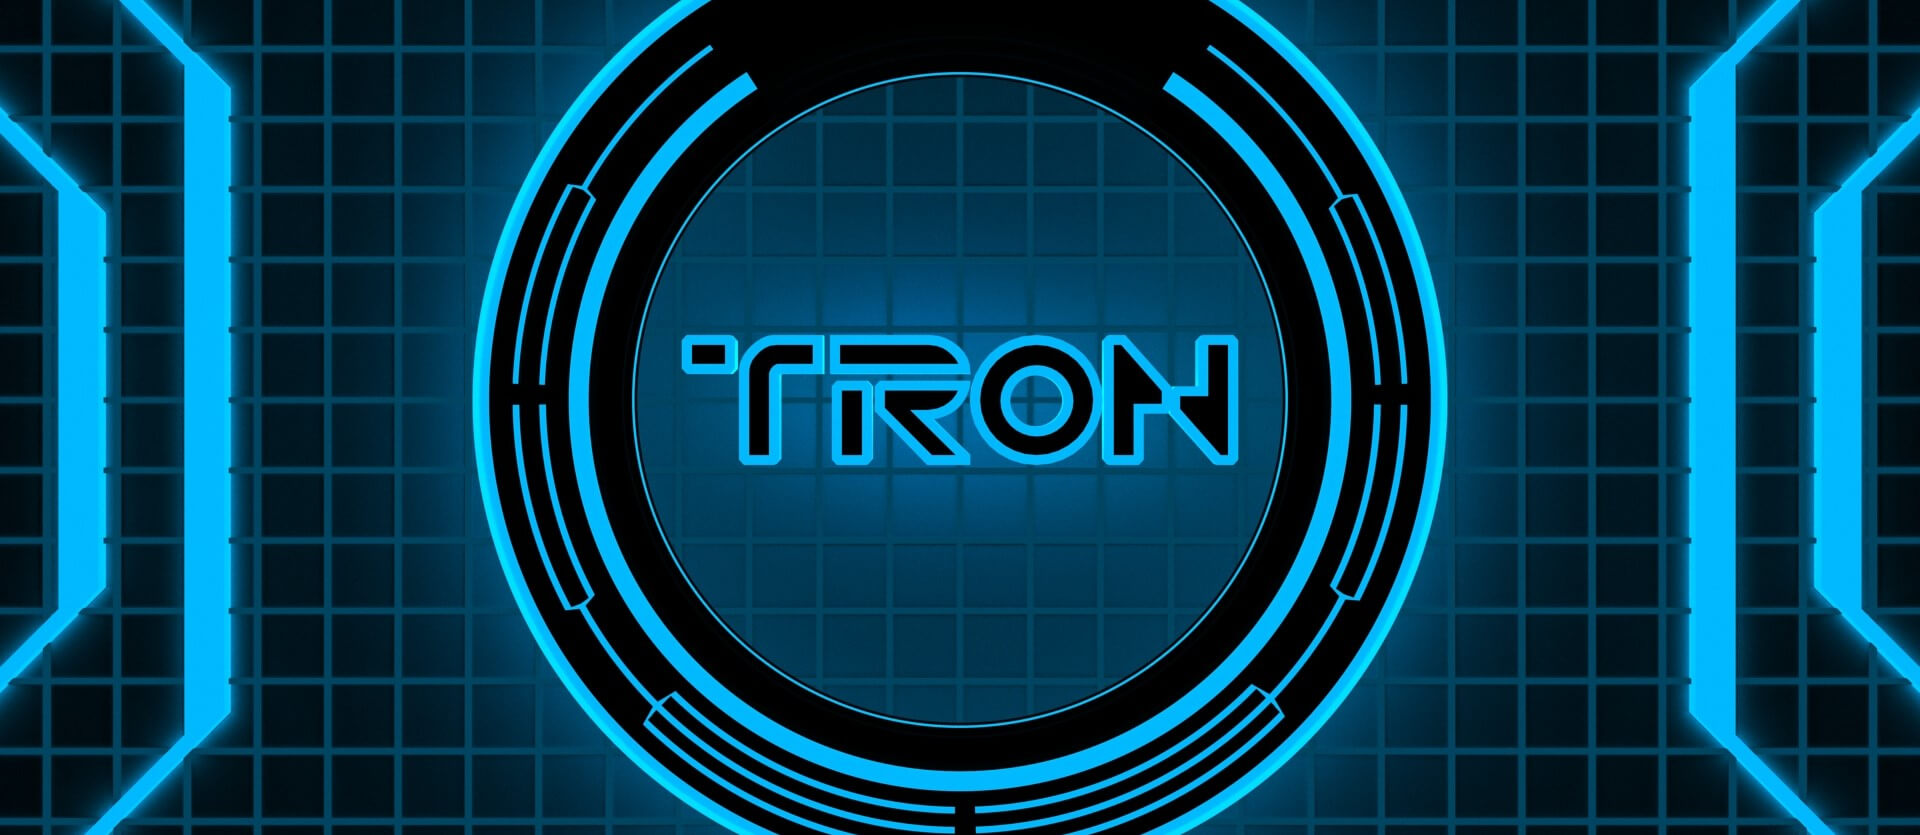 Crypto Analysis: Tron Lost 13.5% in Last 24 Hours